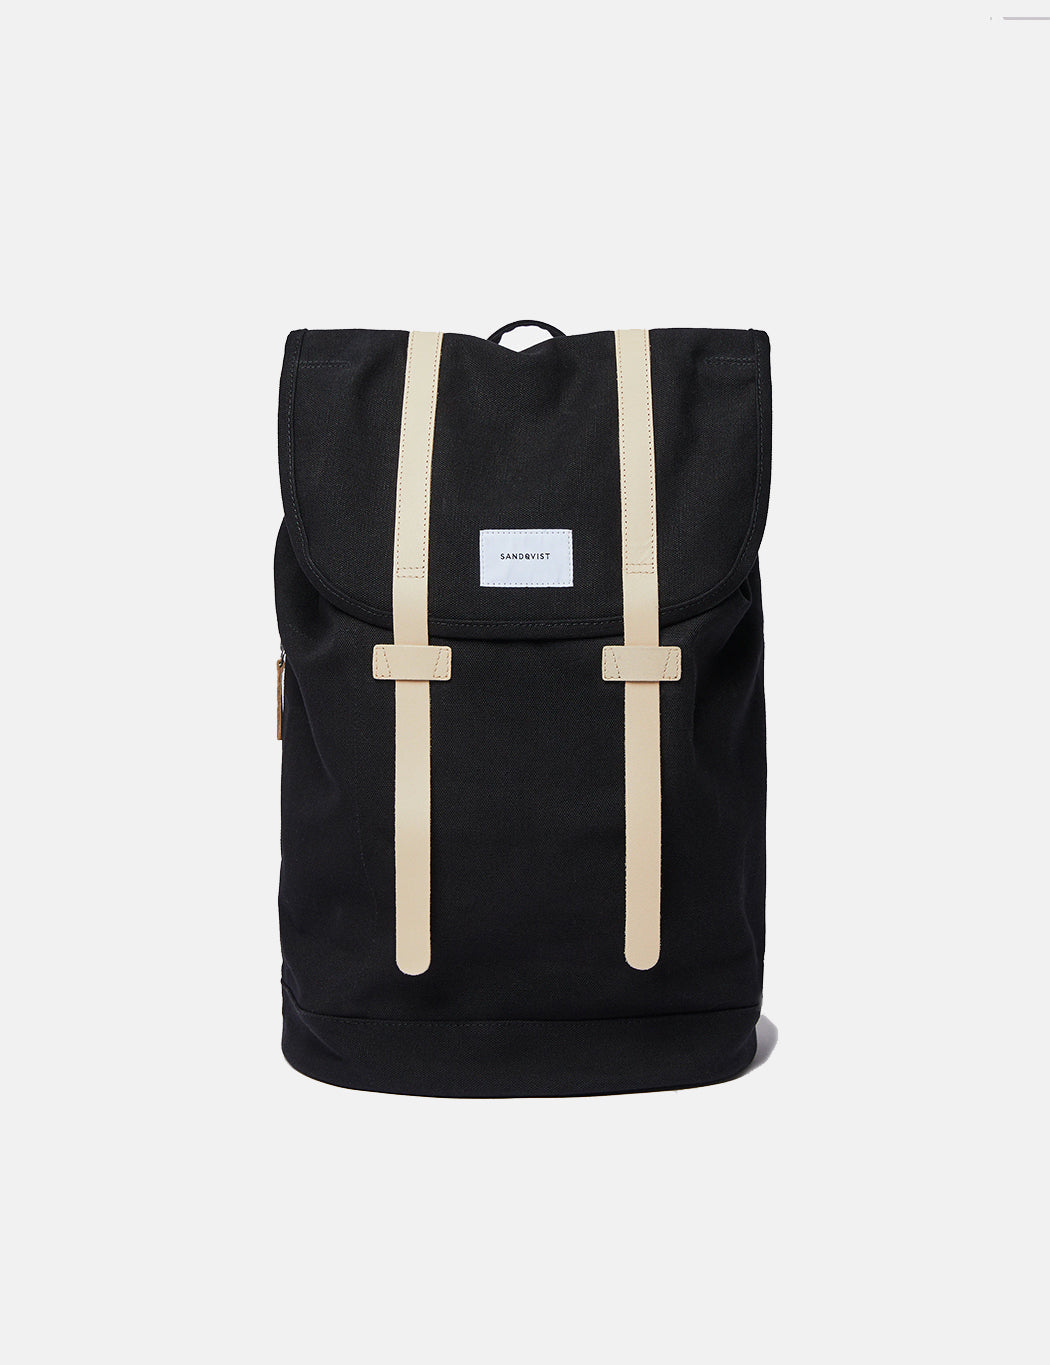 Sandqvist Stig Backpack (Large) - Black/Beige